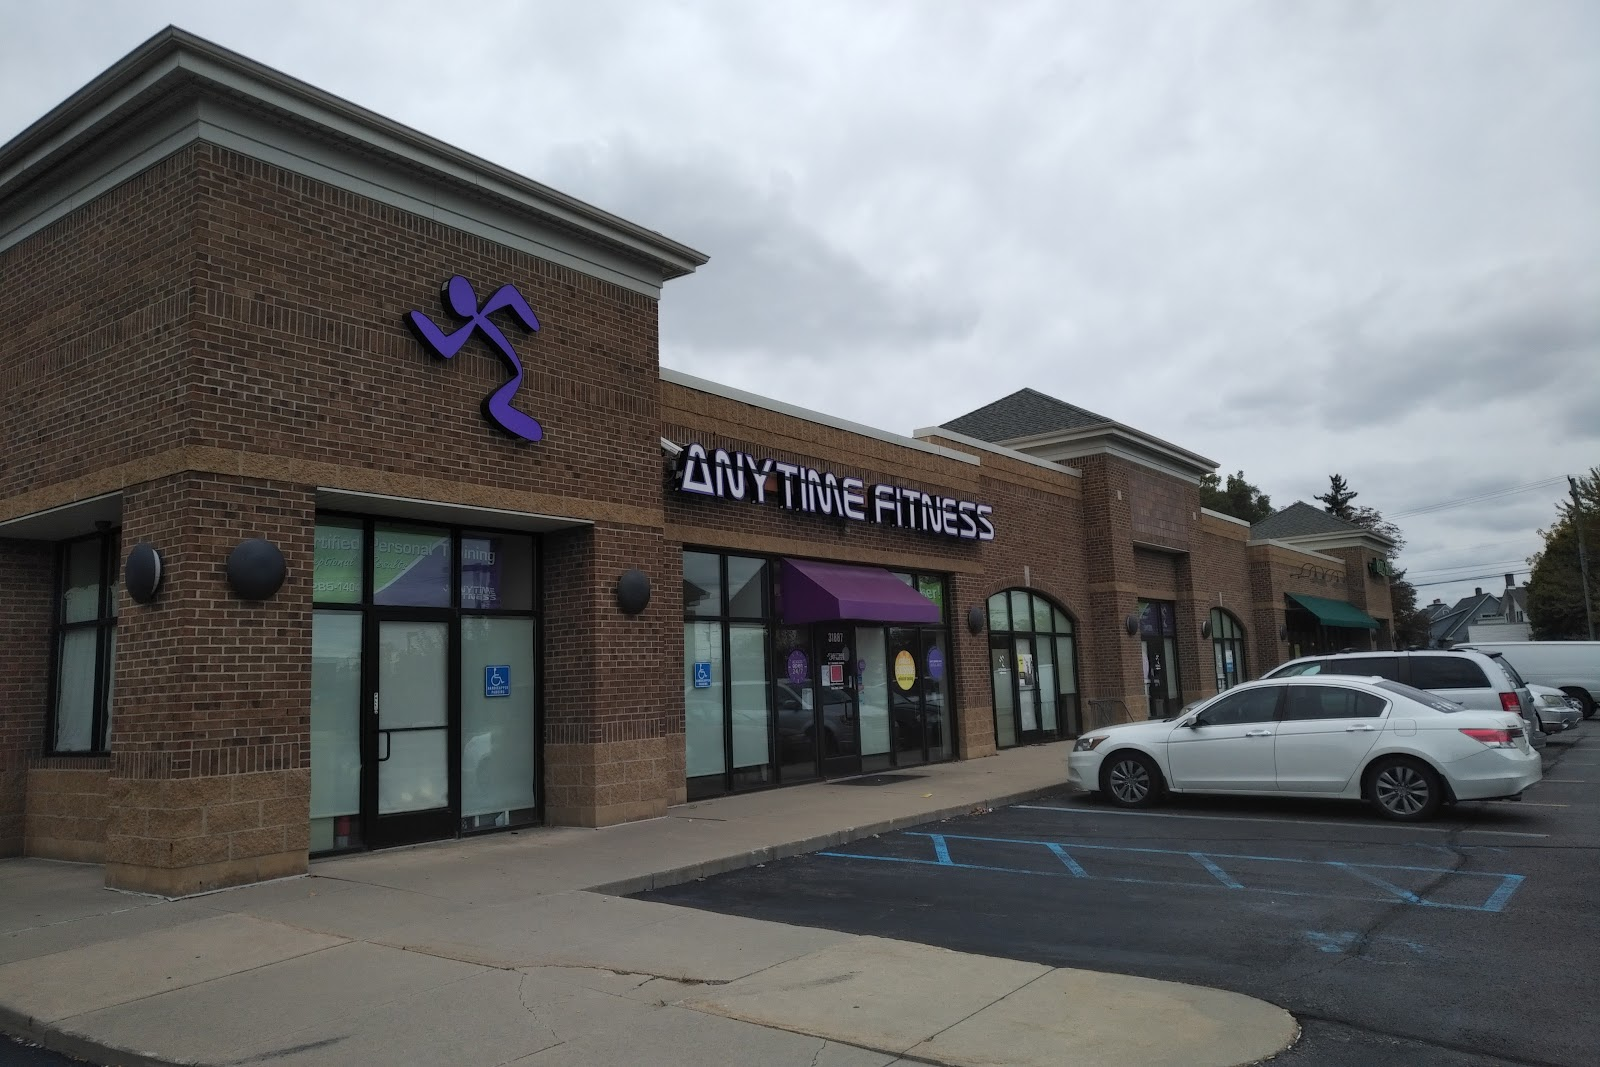 Anytime Fitness - photo